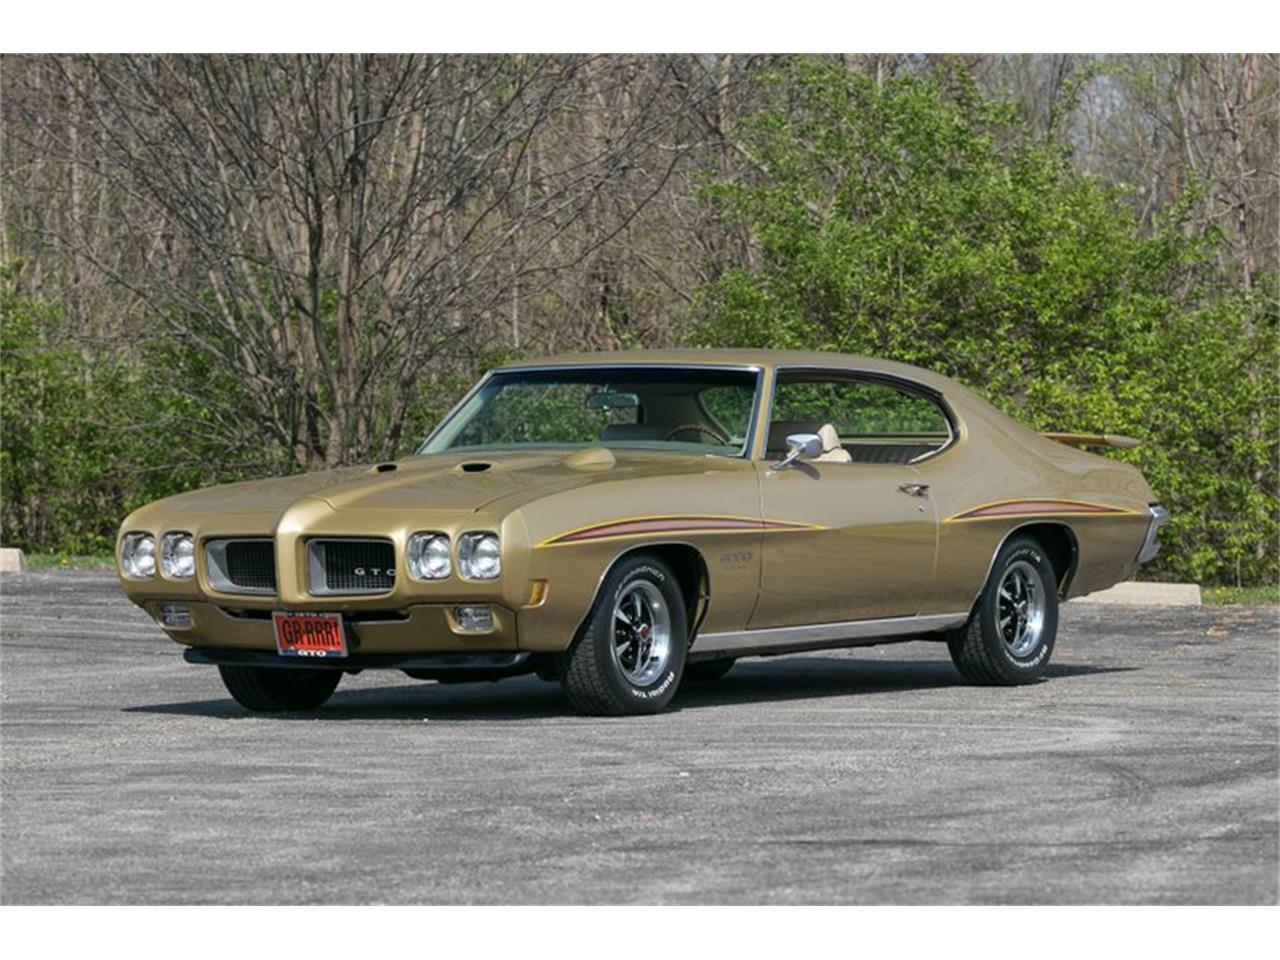 Large Picture of '70 GTO located in Missouri - $59,995.00 Offered by Fast Lane Classic Cars Inc. - QKPX